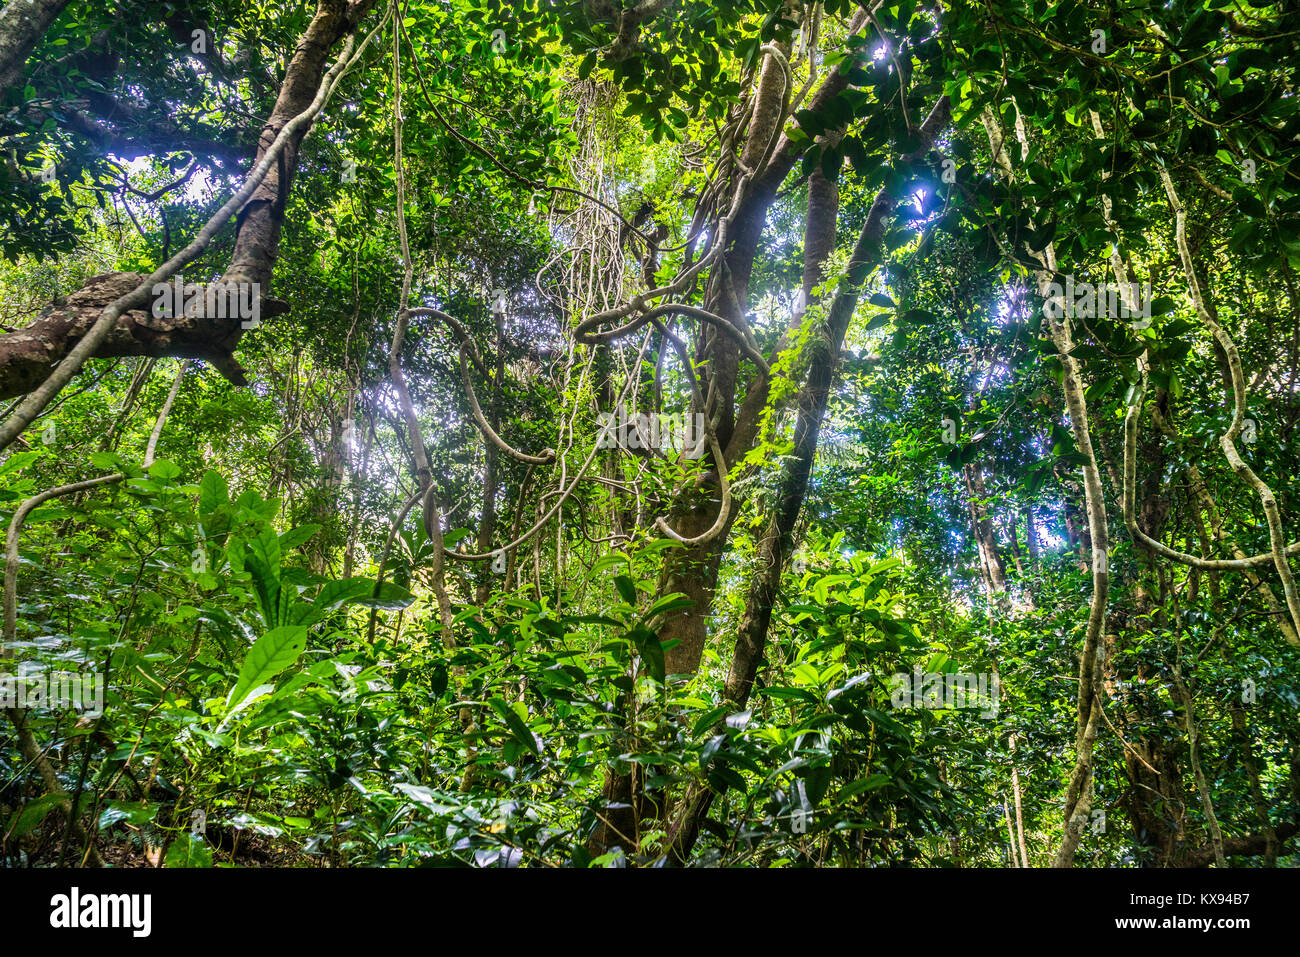 Norfolk Island, Australian external territory, lush rainforest vegetation at Norfolk Island Botanical Garden - Stock Image